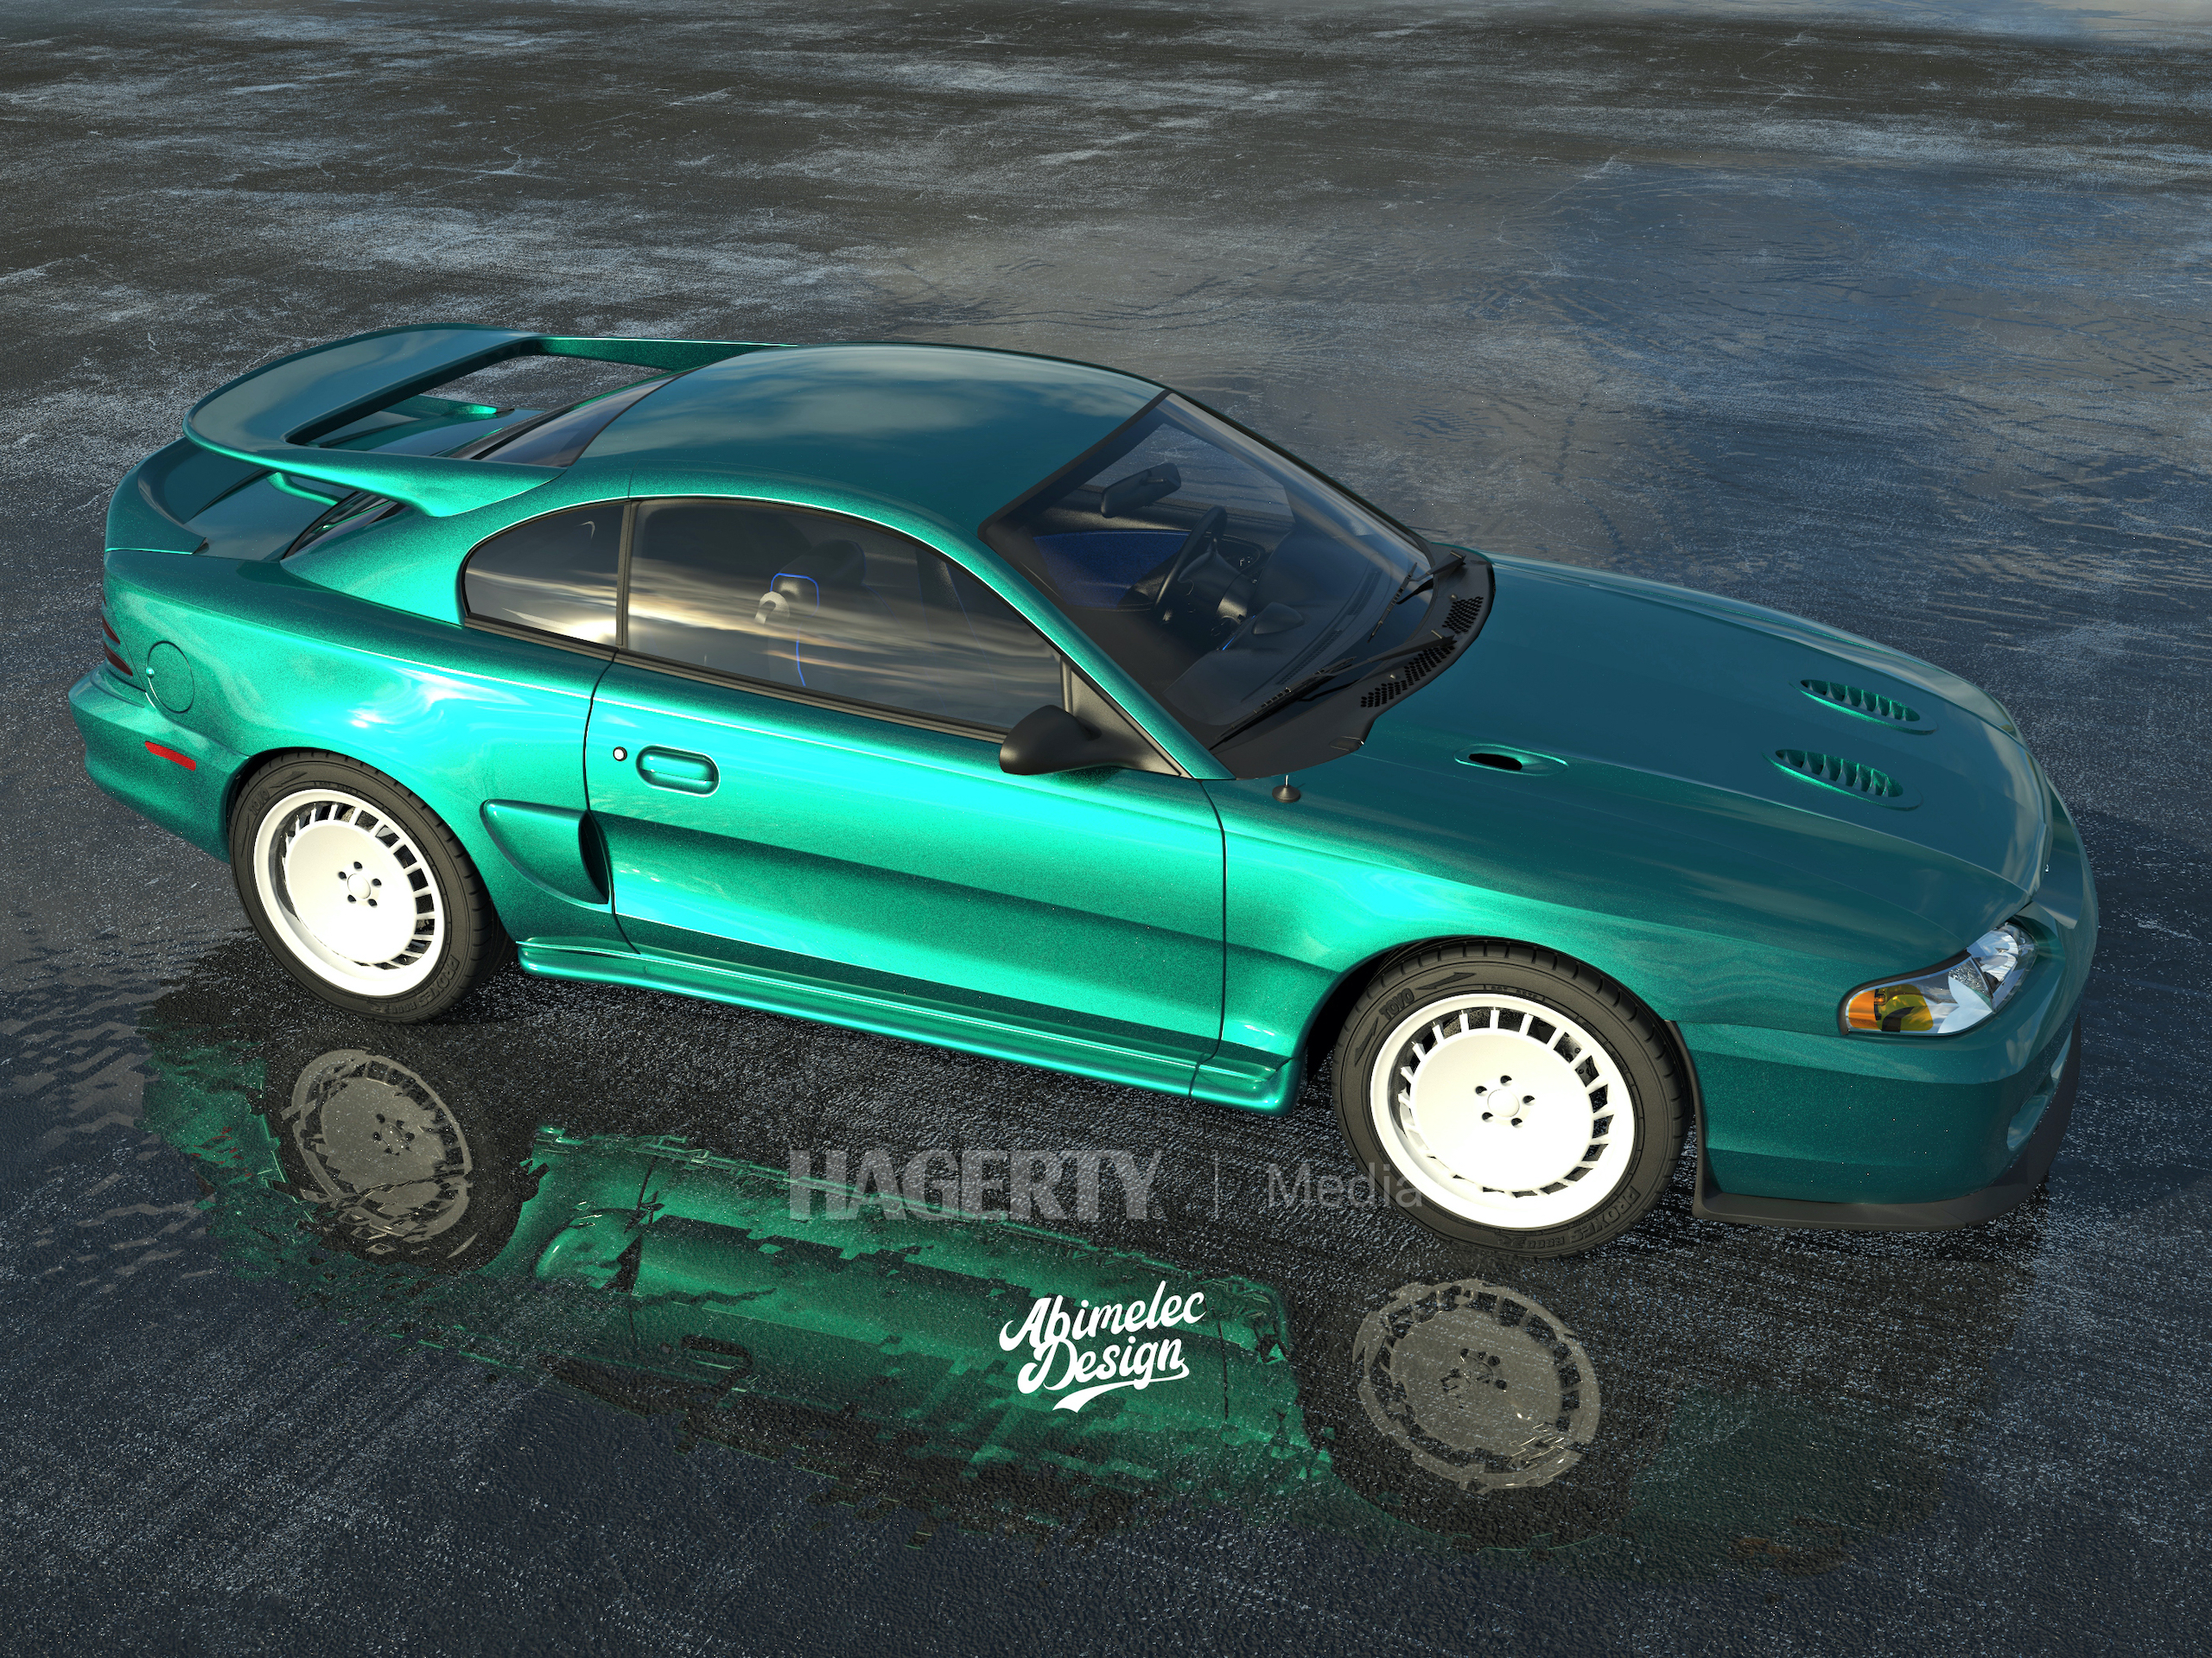 Mustang Cosworth green